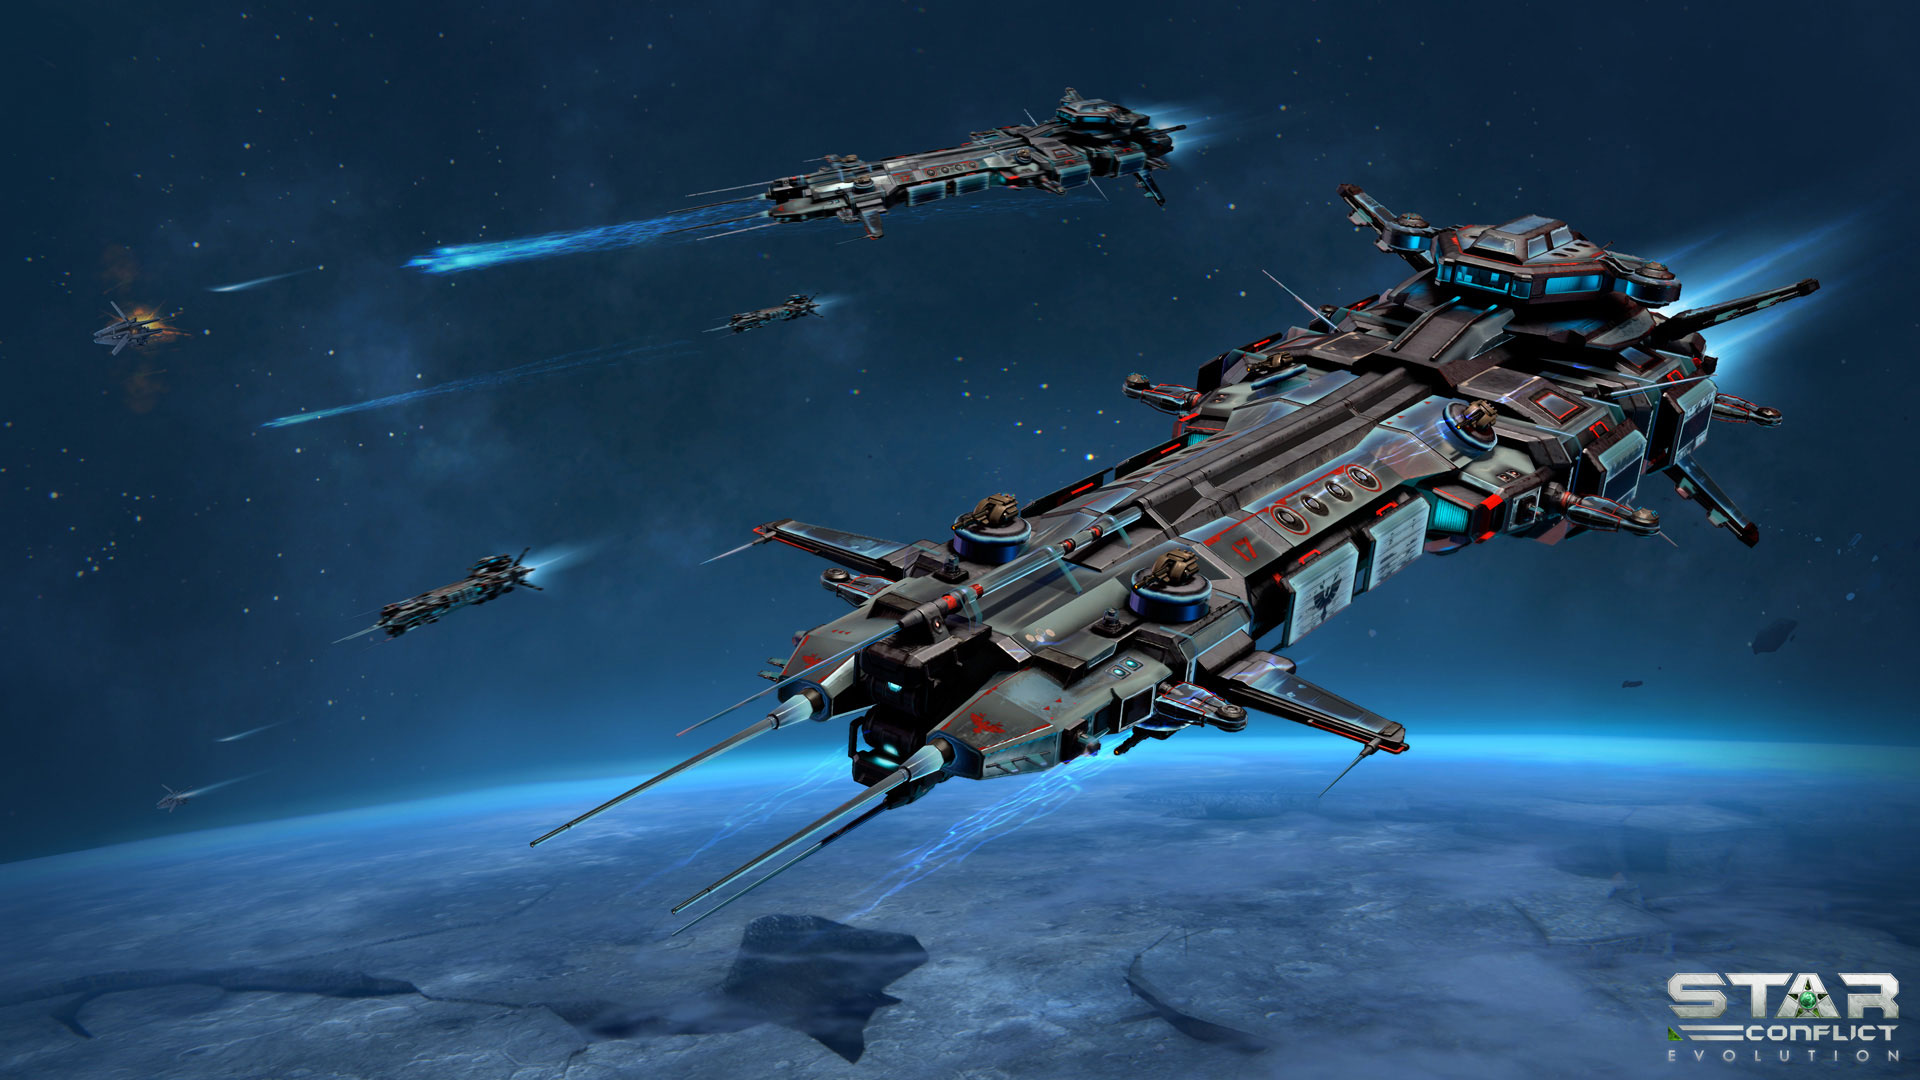 Star Conflict Has Announced A New Content Update Called 'A New Threat,' Star Systems Are Being Invaded And Players Must Unite To Halt This Threat